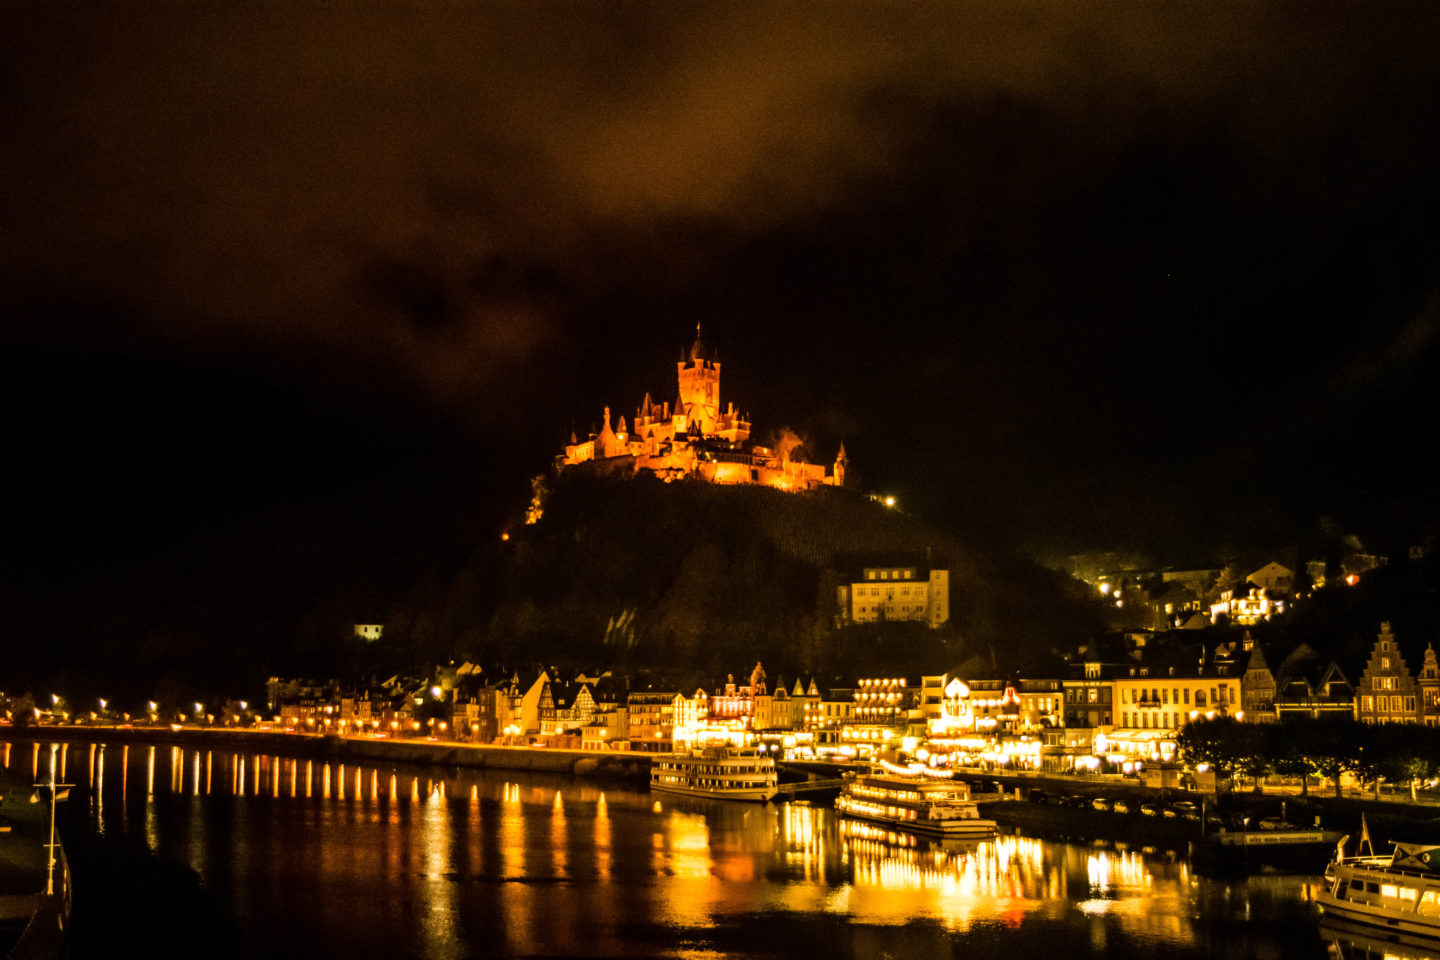 The Cochem Castle lit up at night